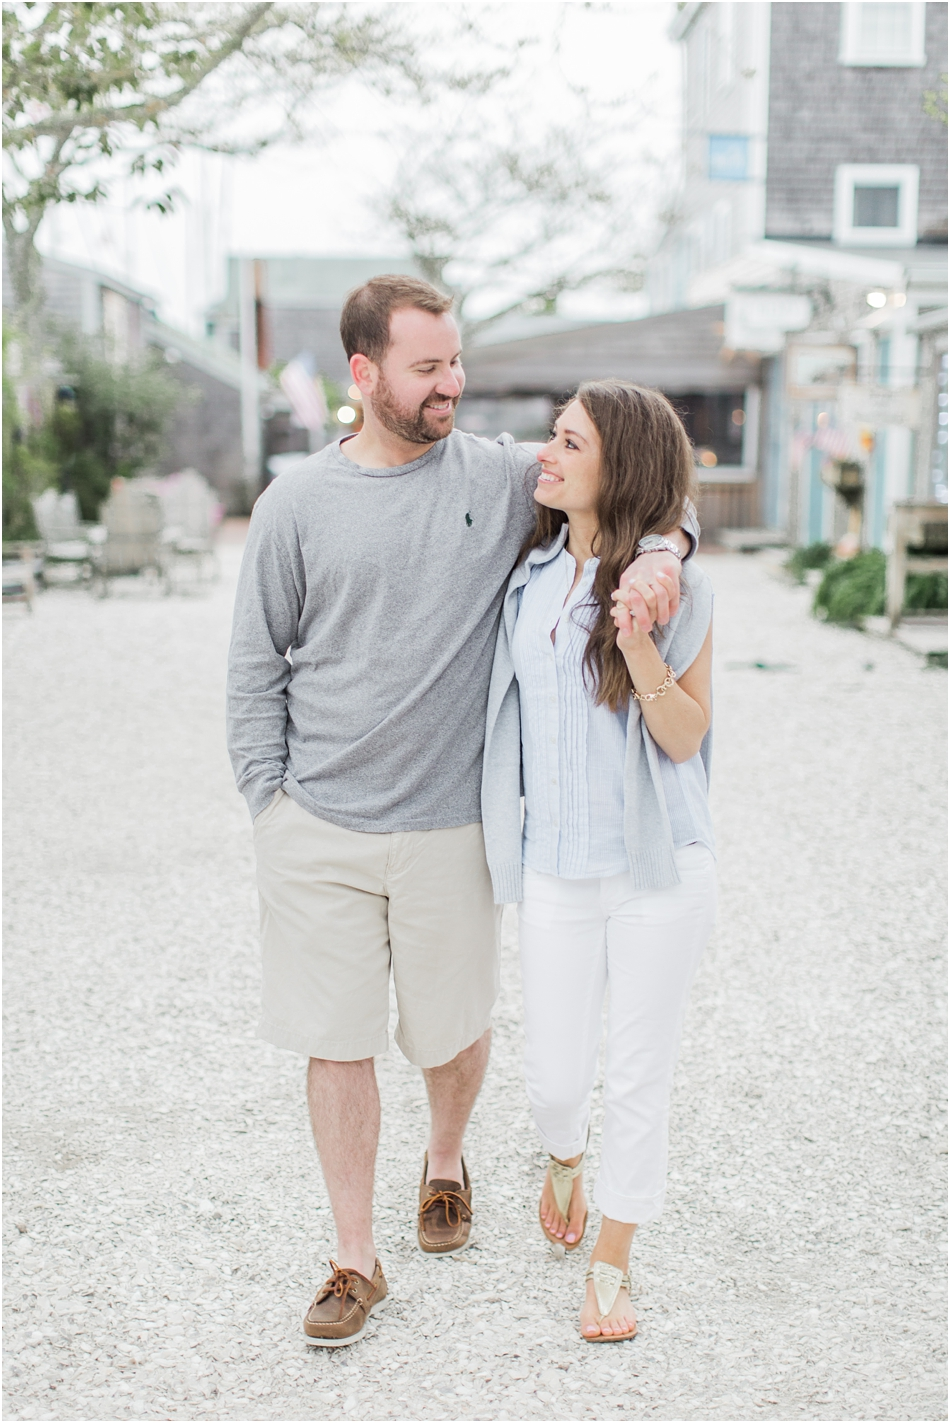 nantucket_engagement_session_downtown_bike_basket_breezer_downtown_8_boston_massachusetts_cape_cod_new_england_wedding_photographer_Meredith_Jane_Photography_photo_1443.jpg